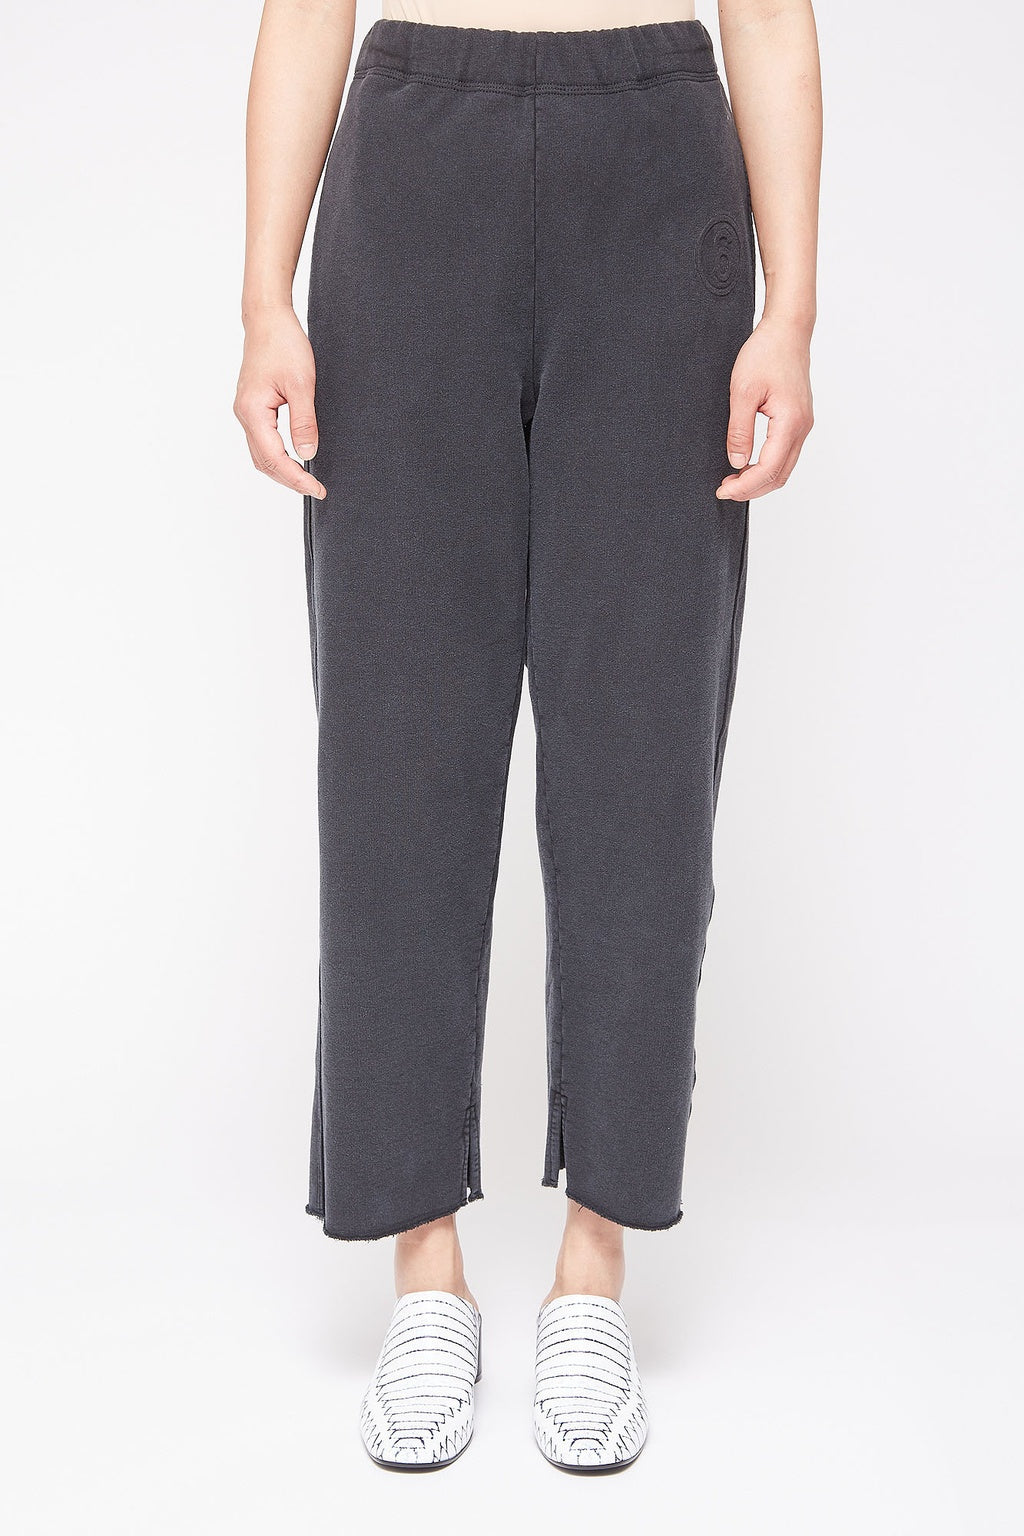 MM6 MAISON MARGIELA - Sweatpants Midi - COMING SOON